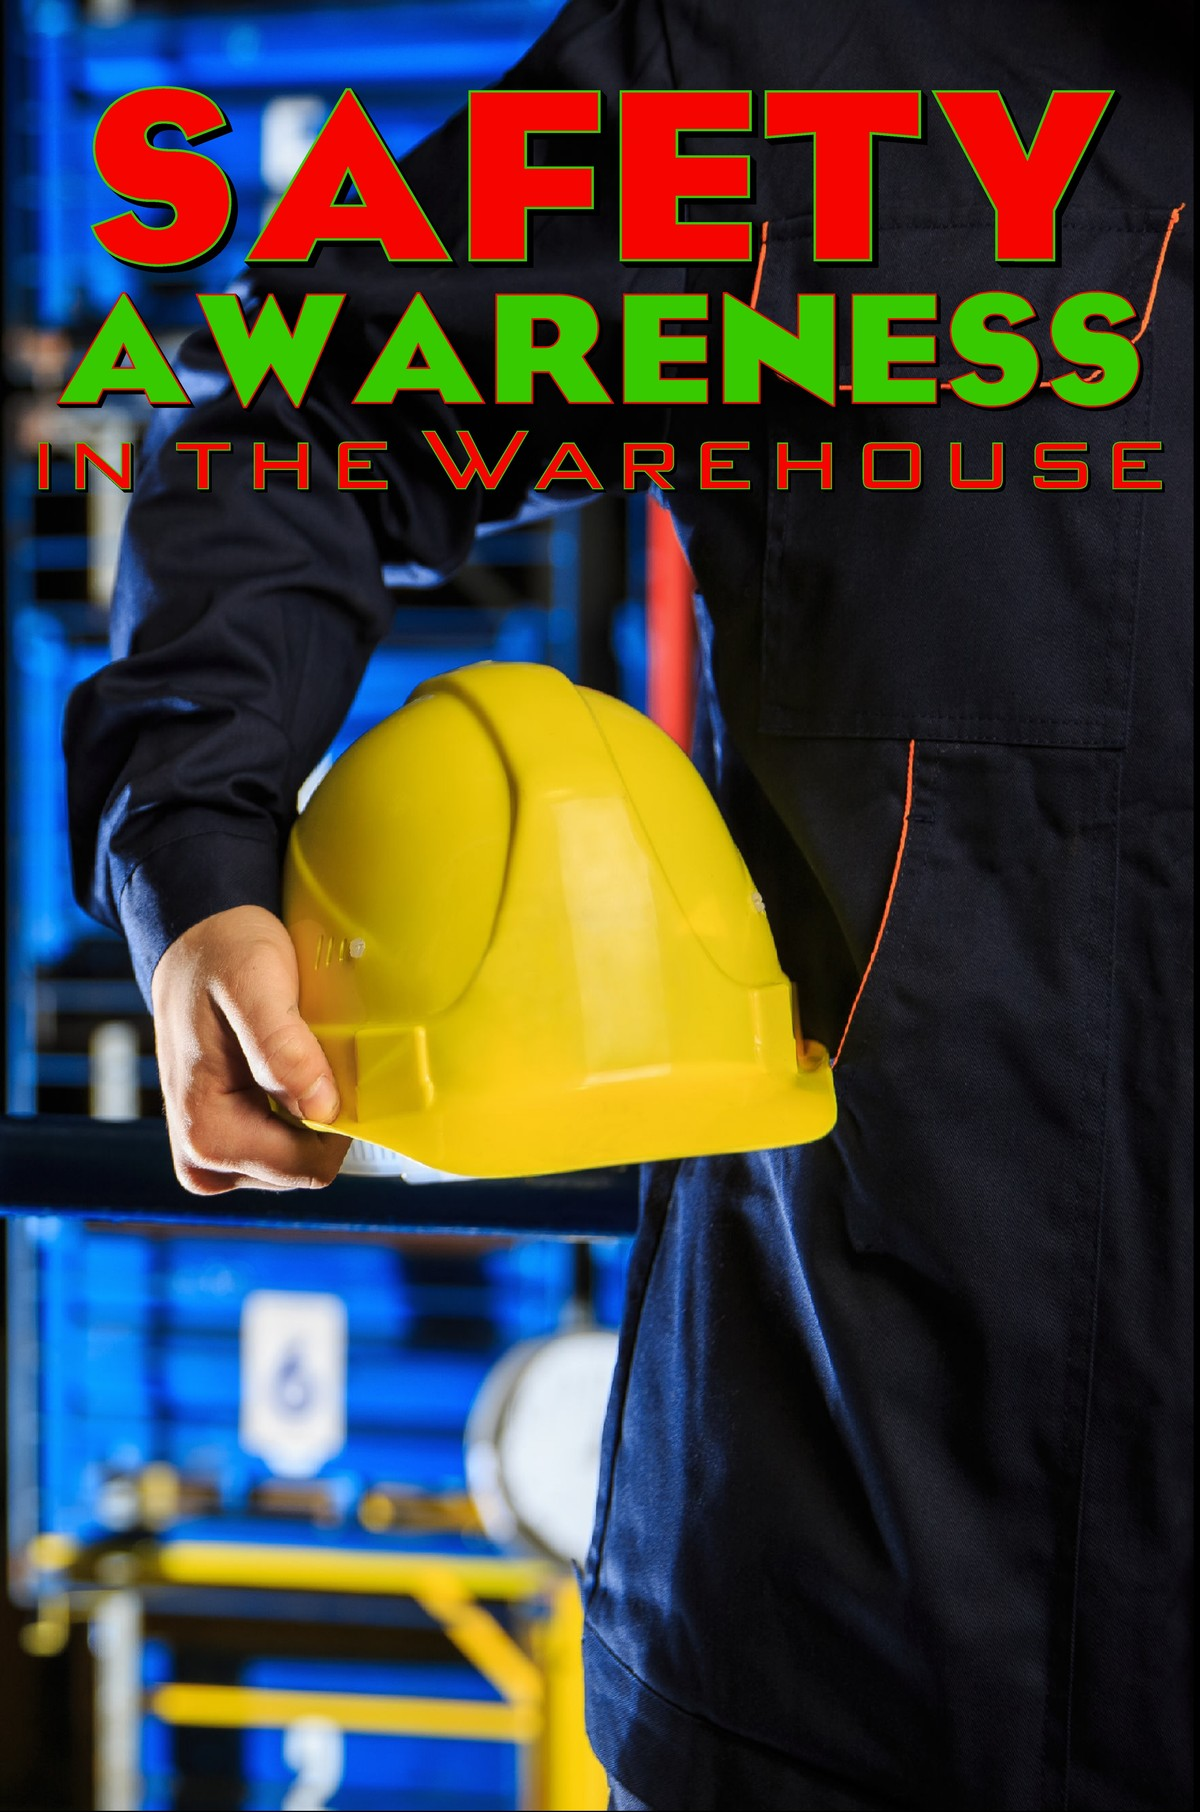 L7025 - Safety Awareness in the Warehouse